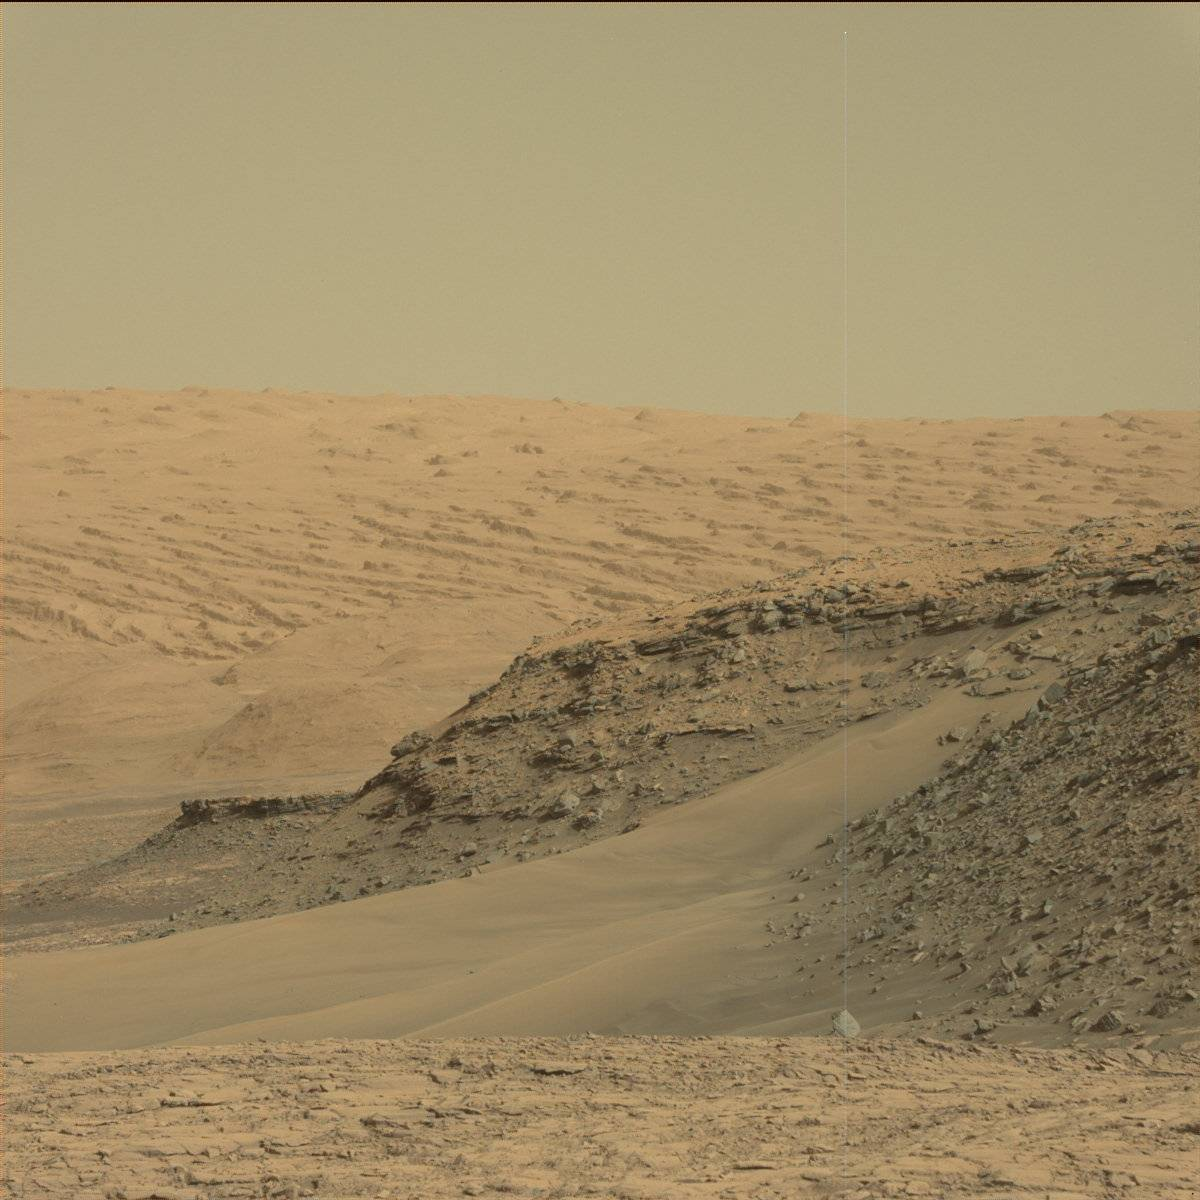 Sol 1421 Mastcam Murray Buttes